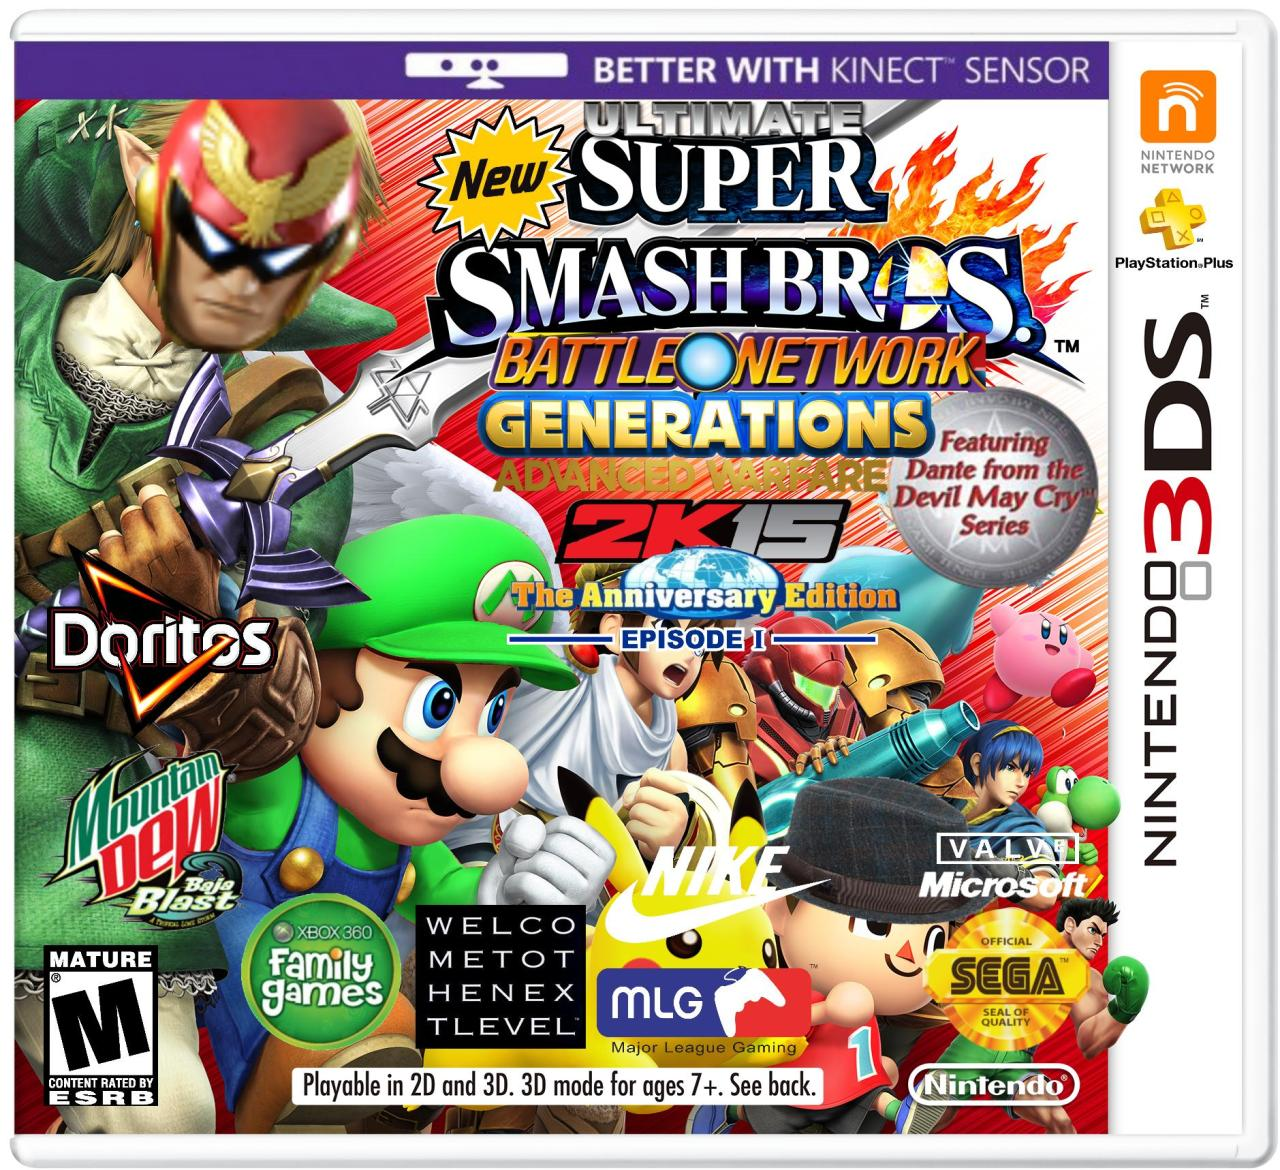 Super Smash Bros Wii U/3DS pic of the day - Page 2 Tumblr_n99nfwDWEy1sn17pgo1_1280